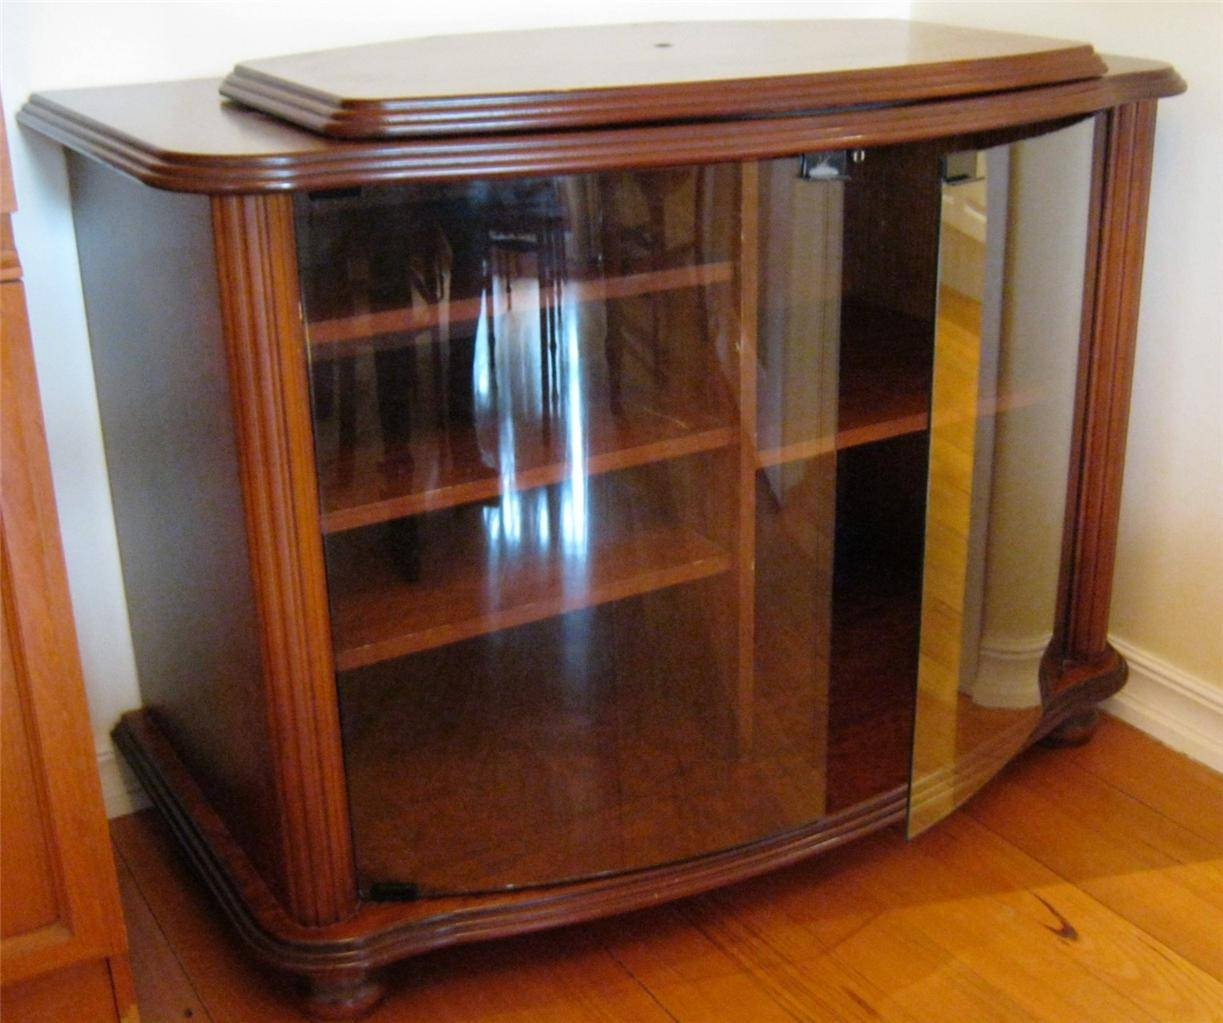 Corner Tv Stand Cabinet With Frameless Glass Doors - Decofurnish within Corner Tv Unit With Glass Doors (Image 3 of 15)